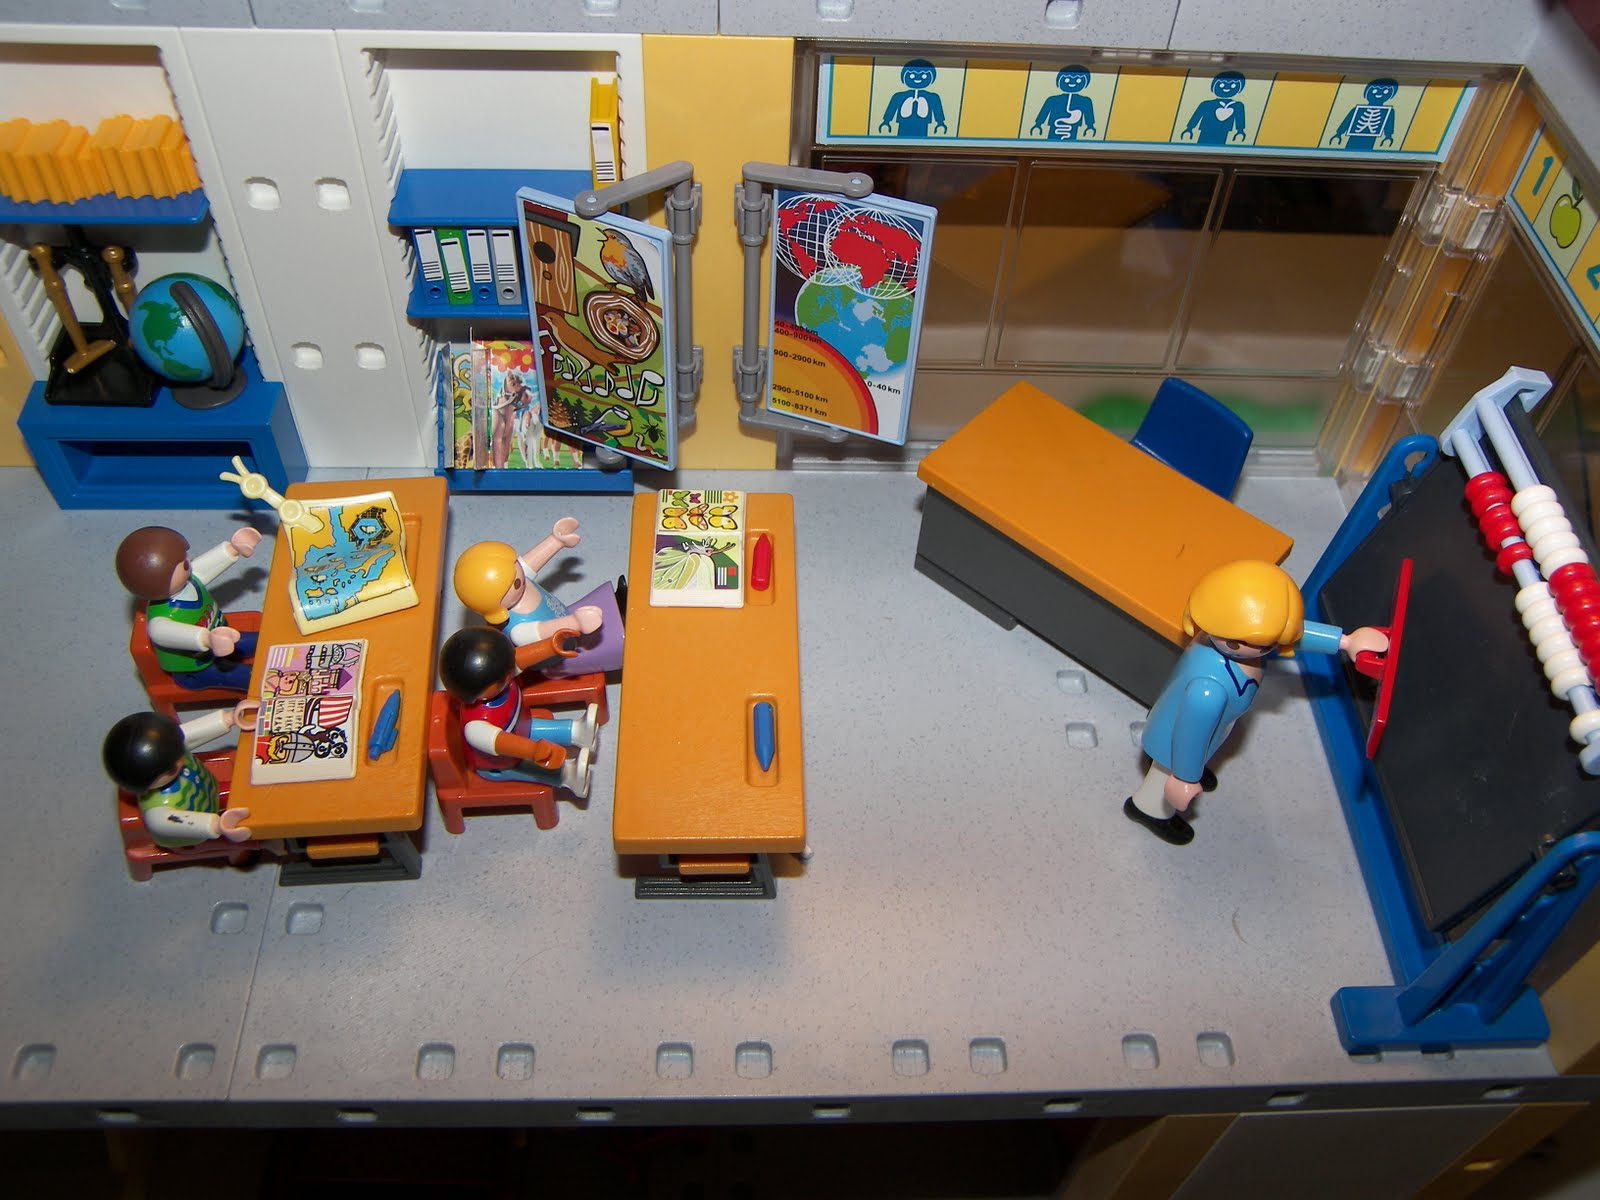 requinville ville de playmobil 2011 09 04. Black Bedroom Furniture Sets. Home Design Ideas